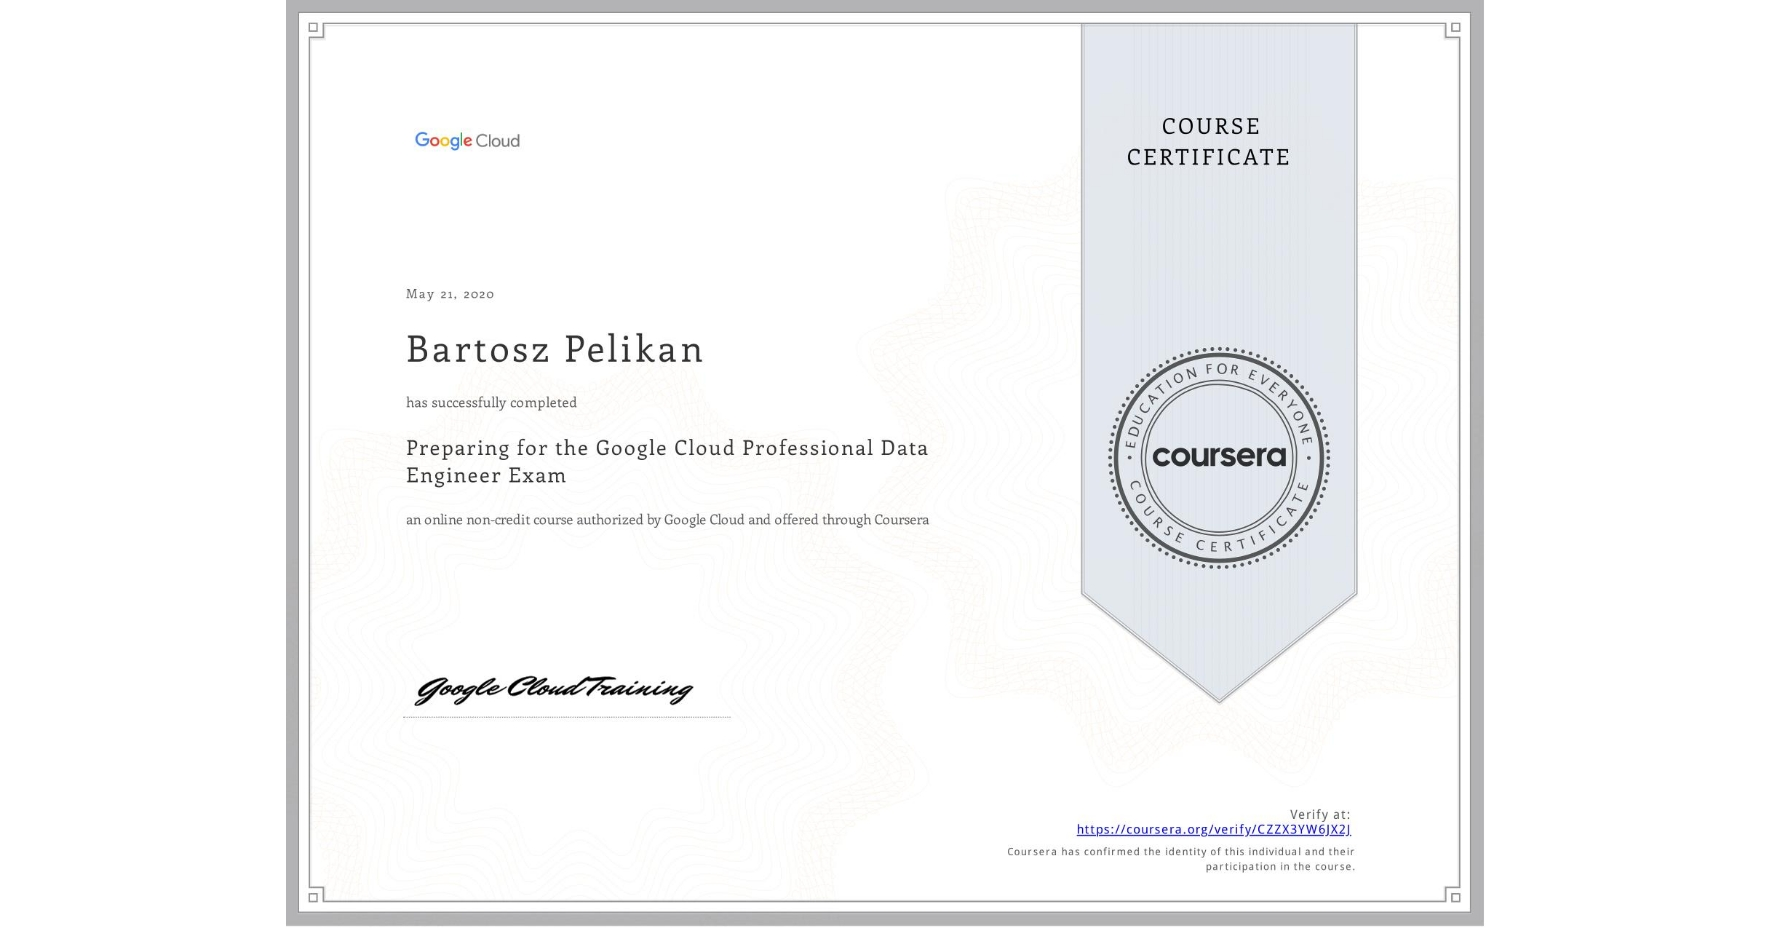 View certificate for Bartosz Pelikan, Preparing for the Google Cloud Professional Data Engineer Exam, an online non-credit course authorized by Google Cloud and offered through Coursera